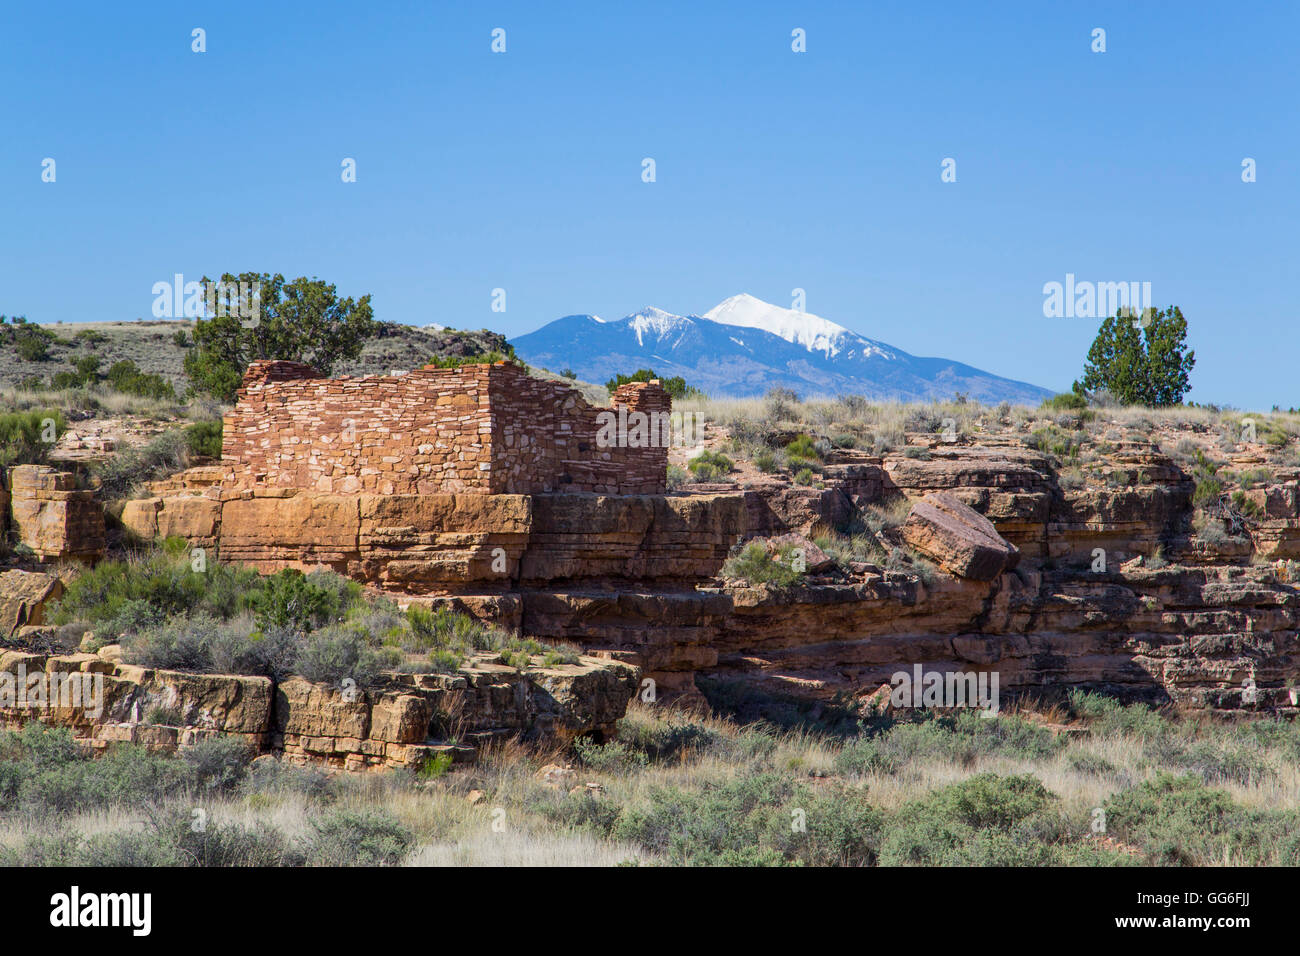 Lomaki Pueblo, inhabited from approximately 1100 AD to 1250 AD, Wupatki National Monument, Arizona, USA - Stock Image